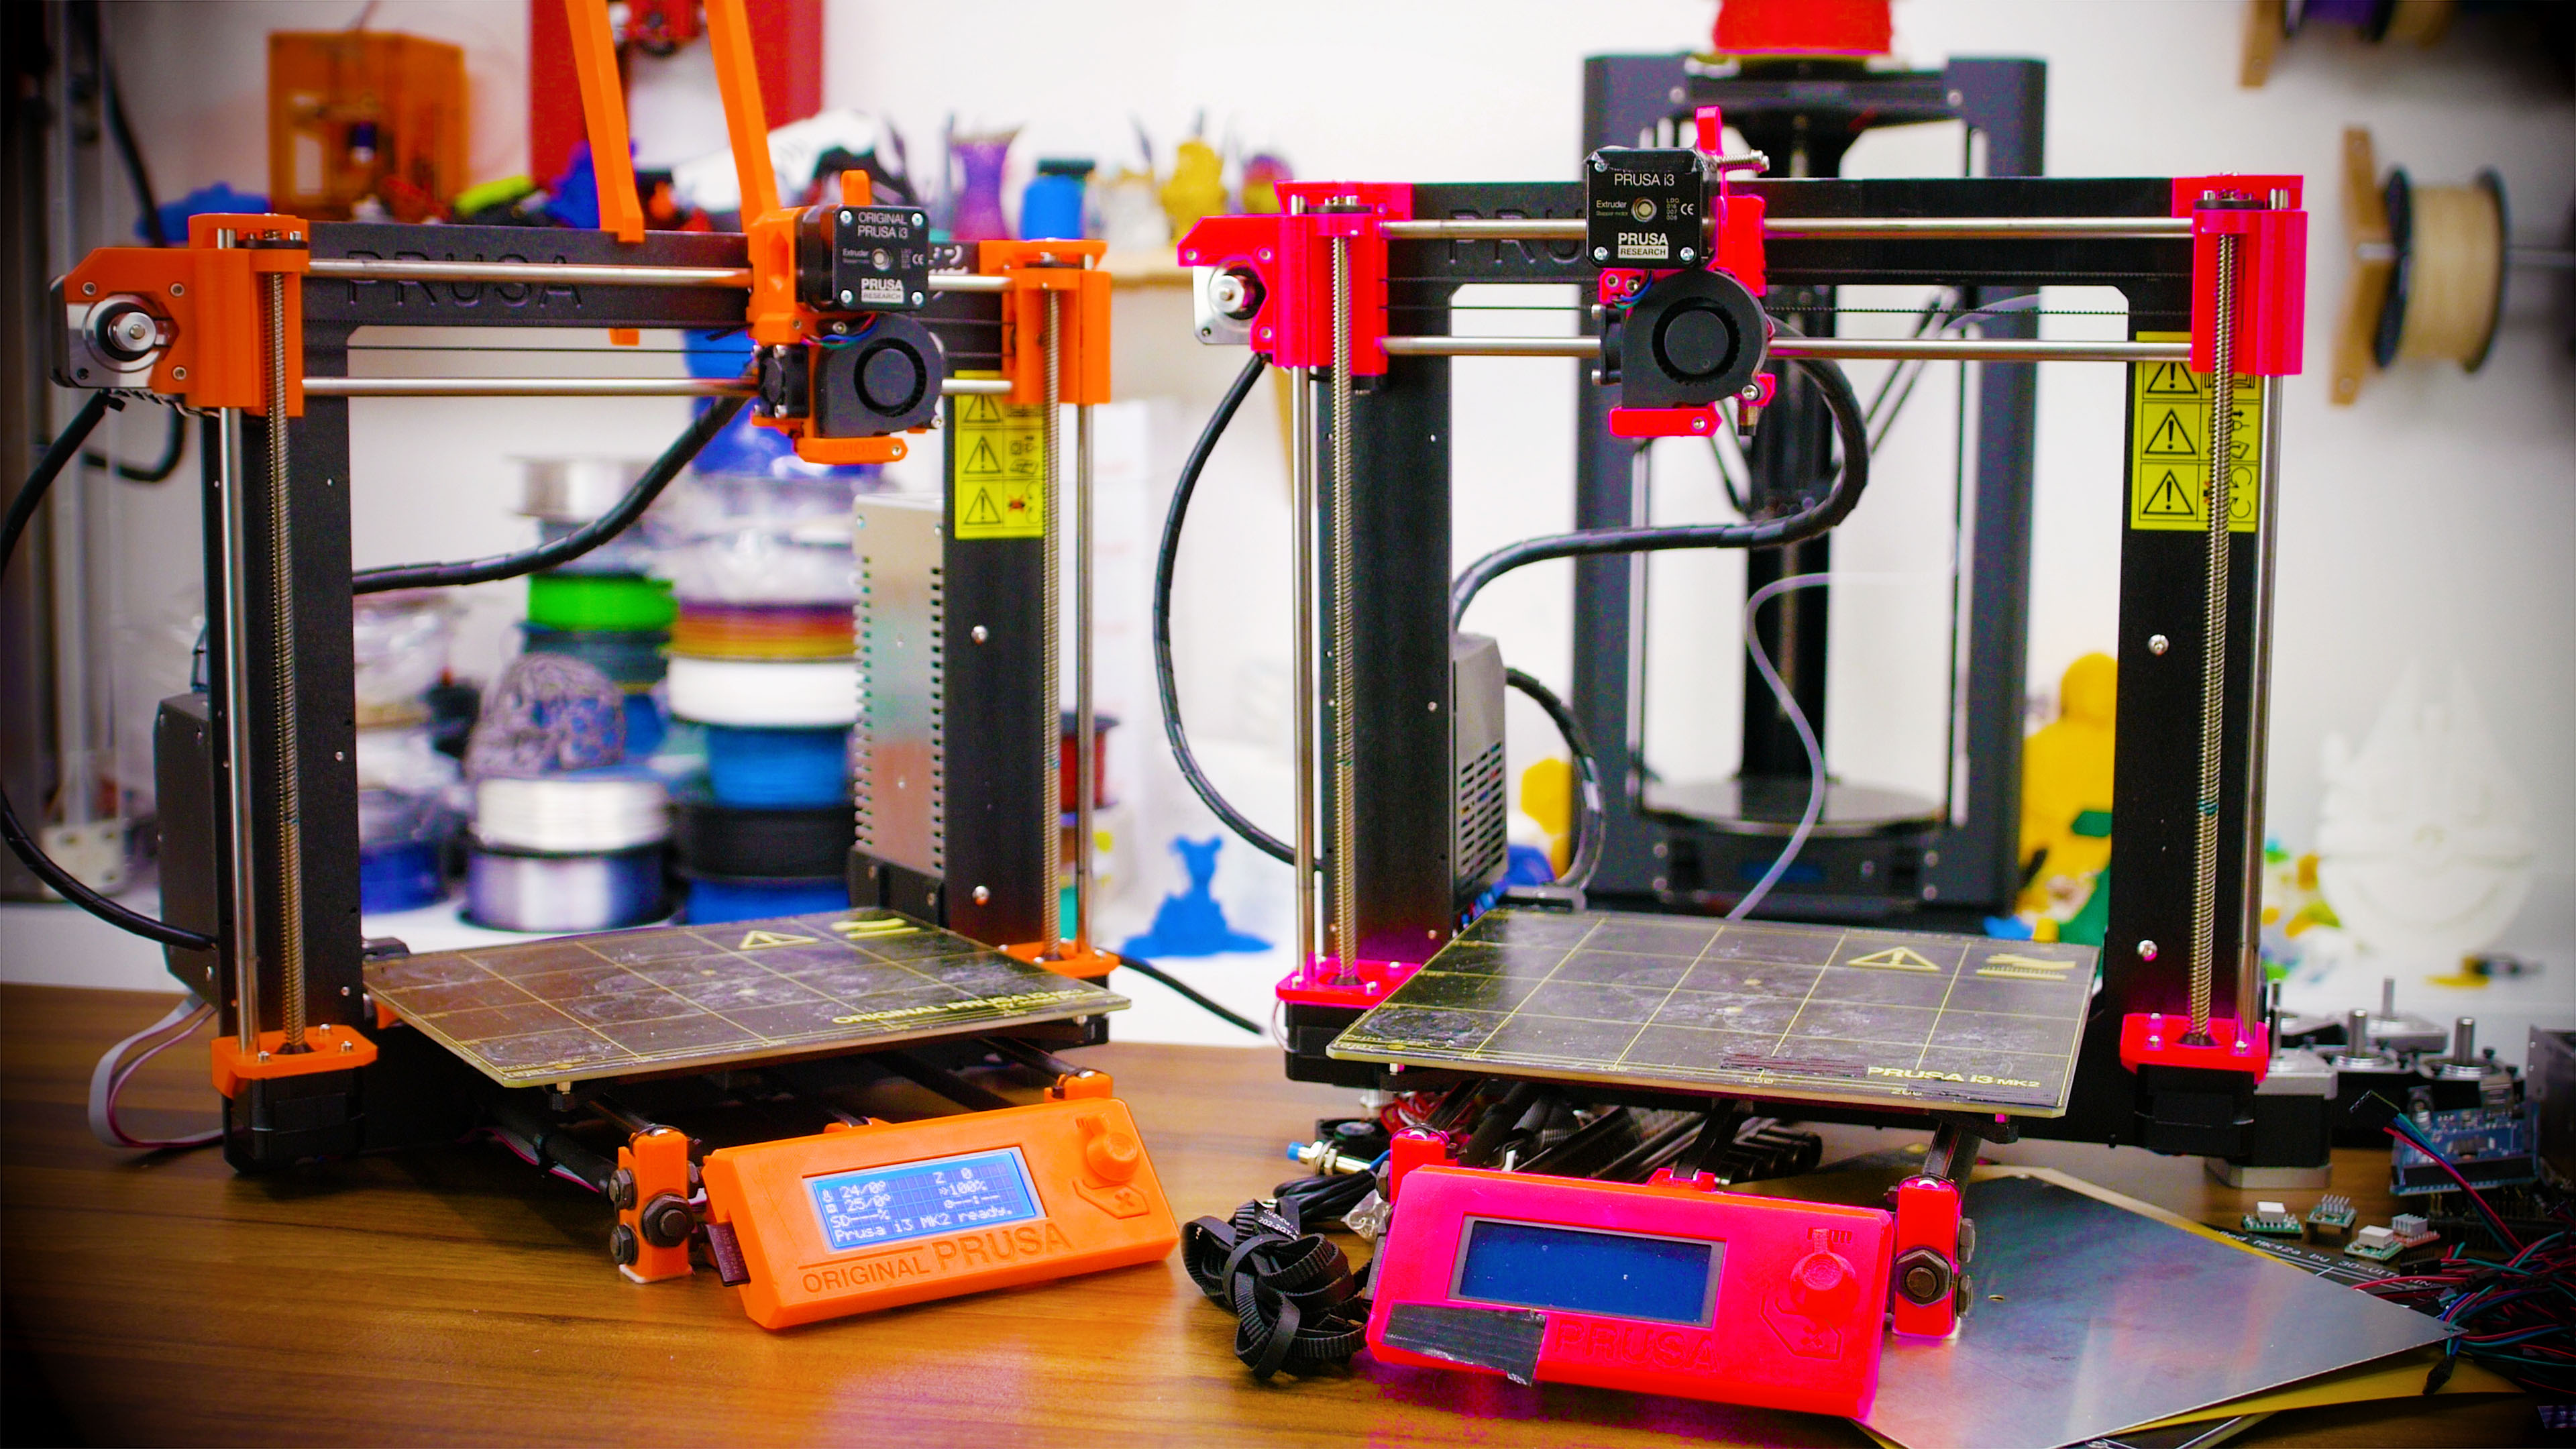 Building the cheapest possible Prusa i3 MK2 – Tom's 3D printing